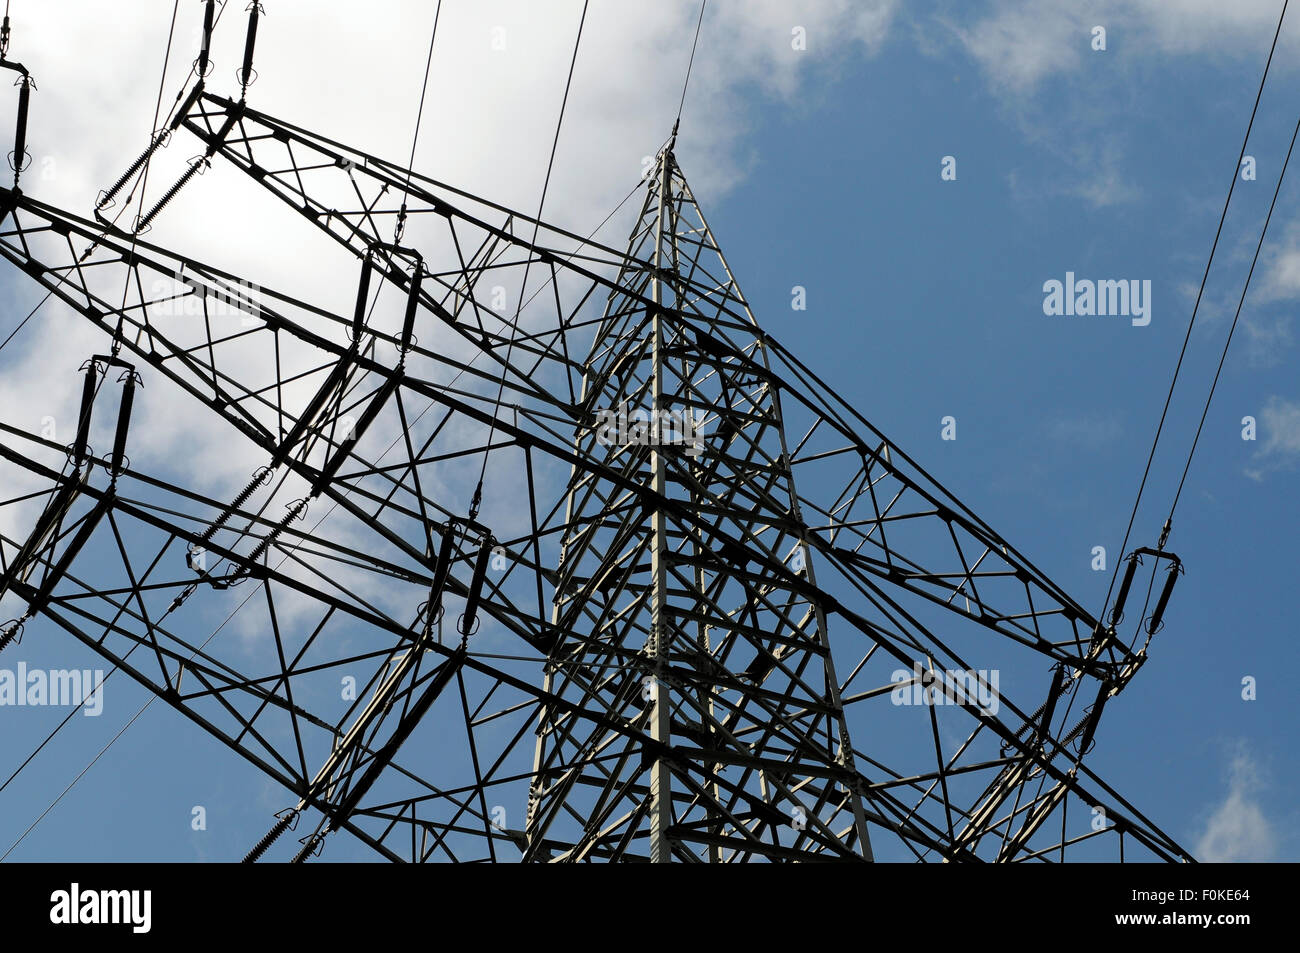 RWE Tower with 380000 voltage in Germany Stock Photo